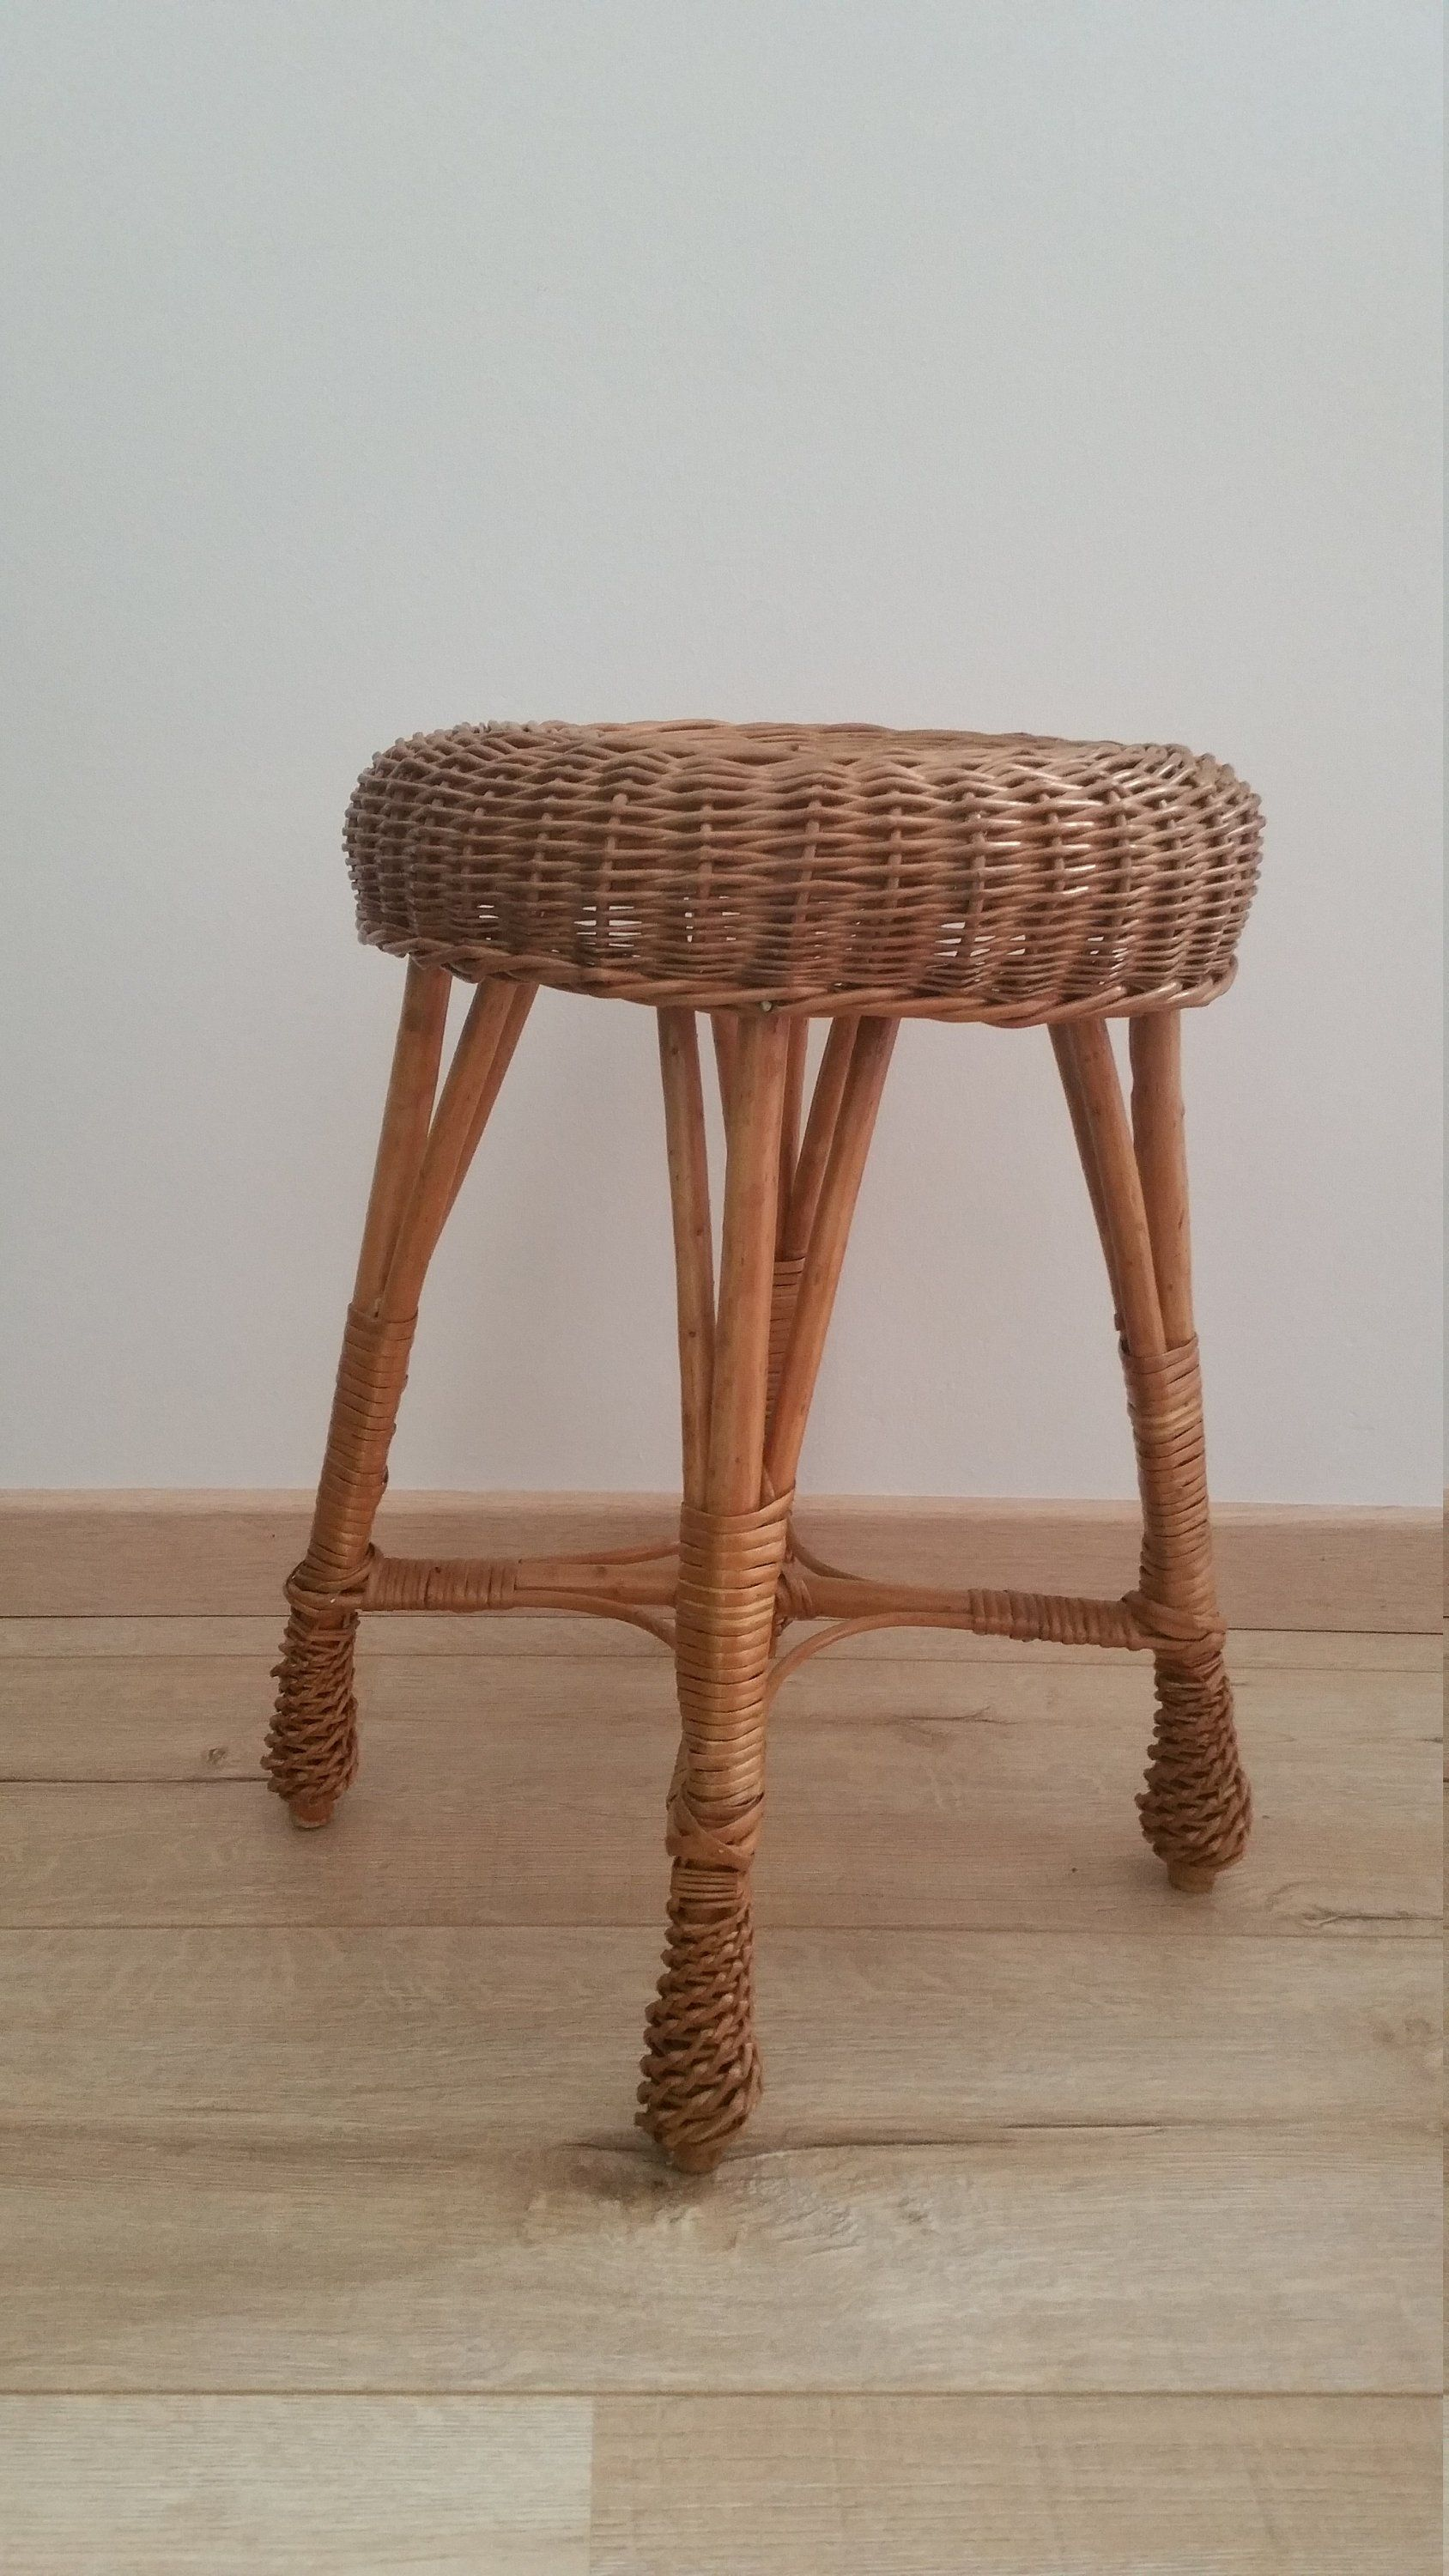 Rattan Hocker Vintage Rattan Hocker Boho Rund 1960 Wicker Chair Stool Mid